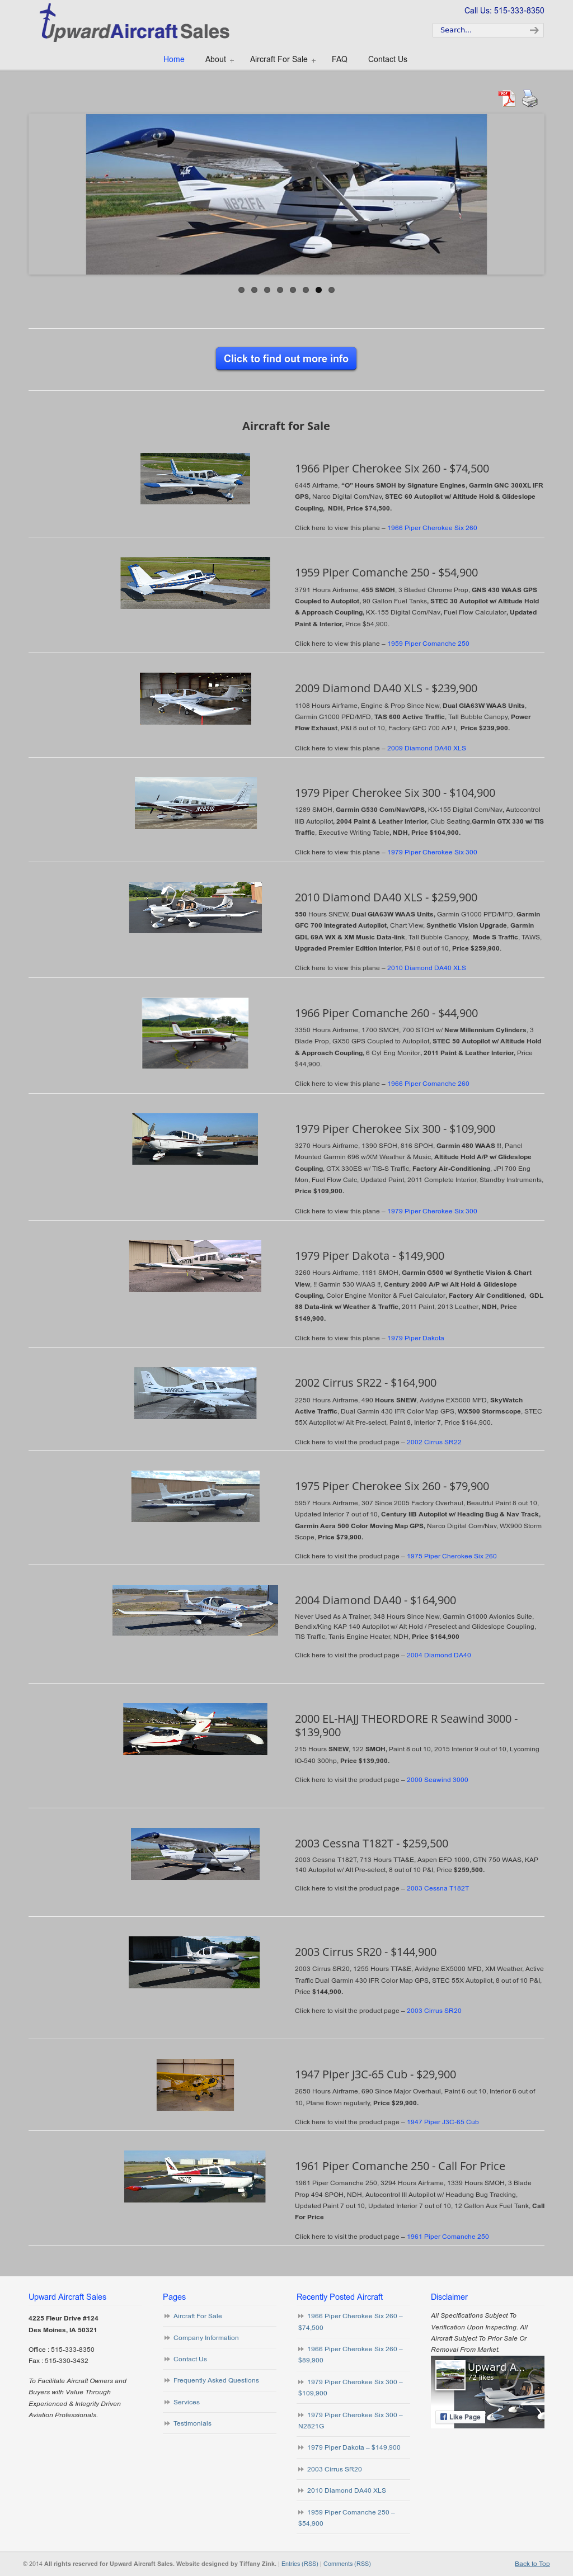 For Upward Aircraft Sales Competitors, Revenue and Employees